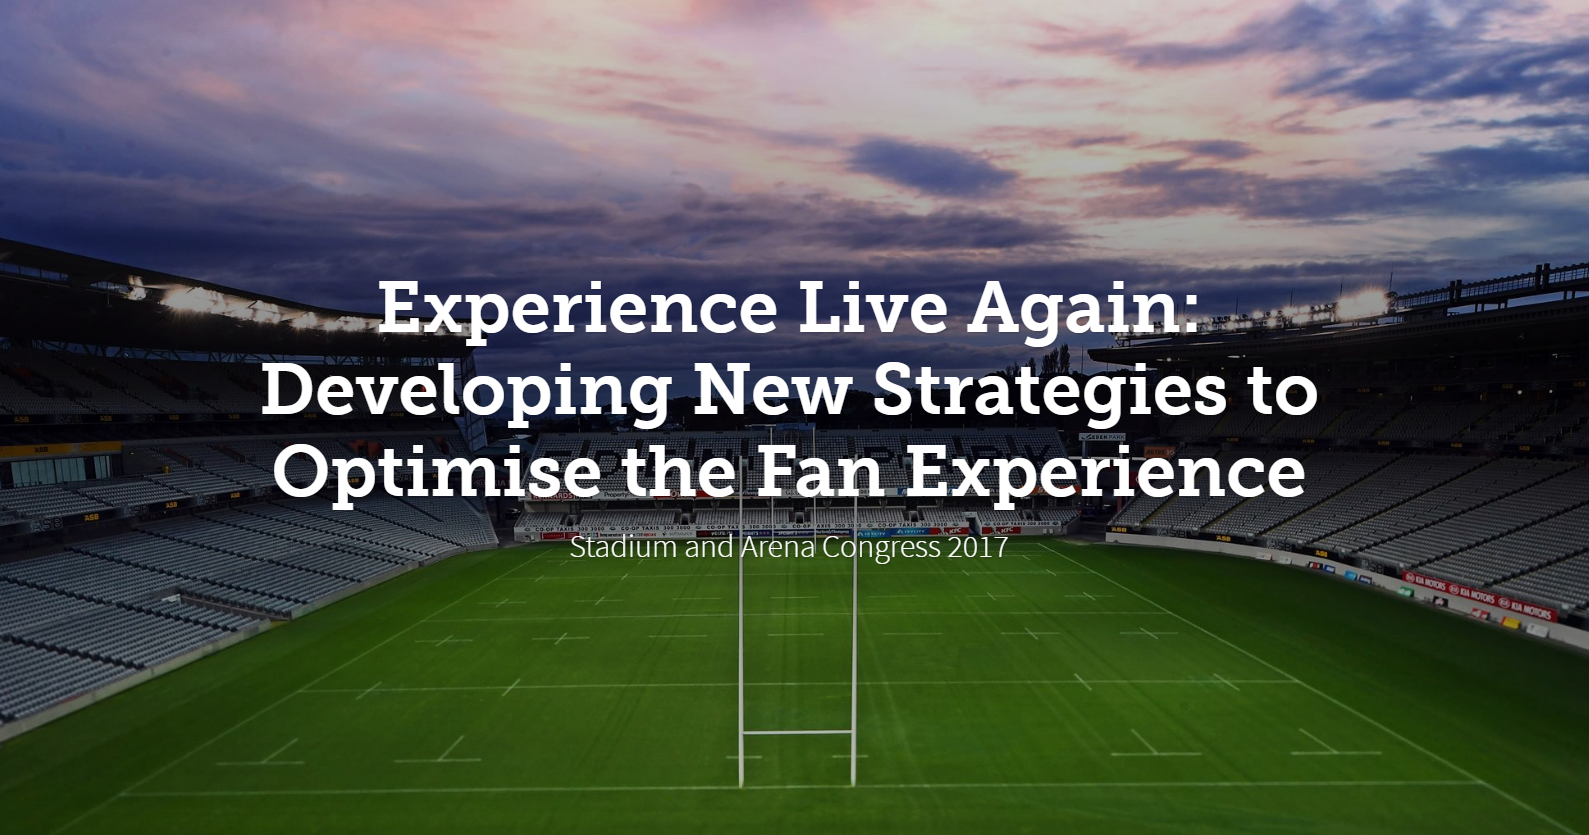 Experience Live Again: Developing New Strategies to Optimise the Fan Experience